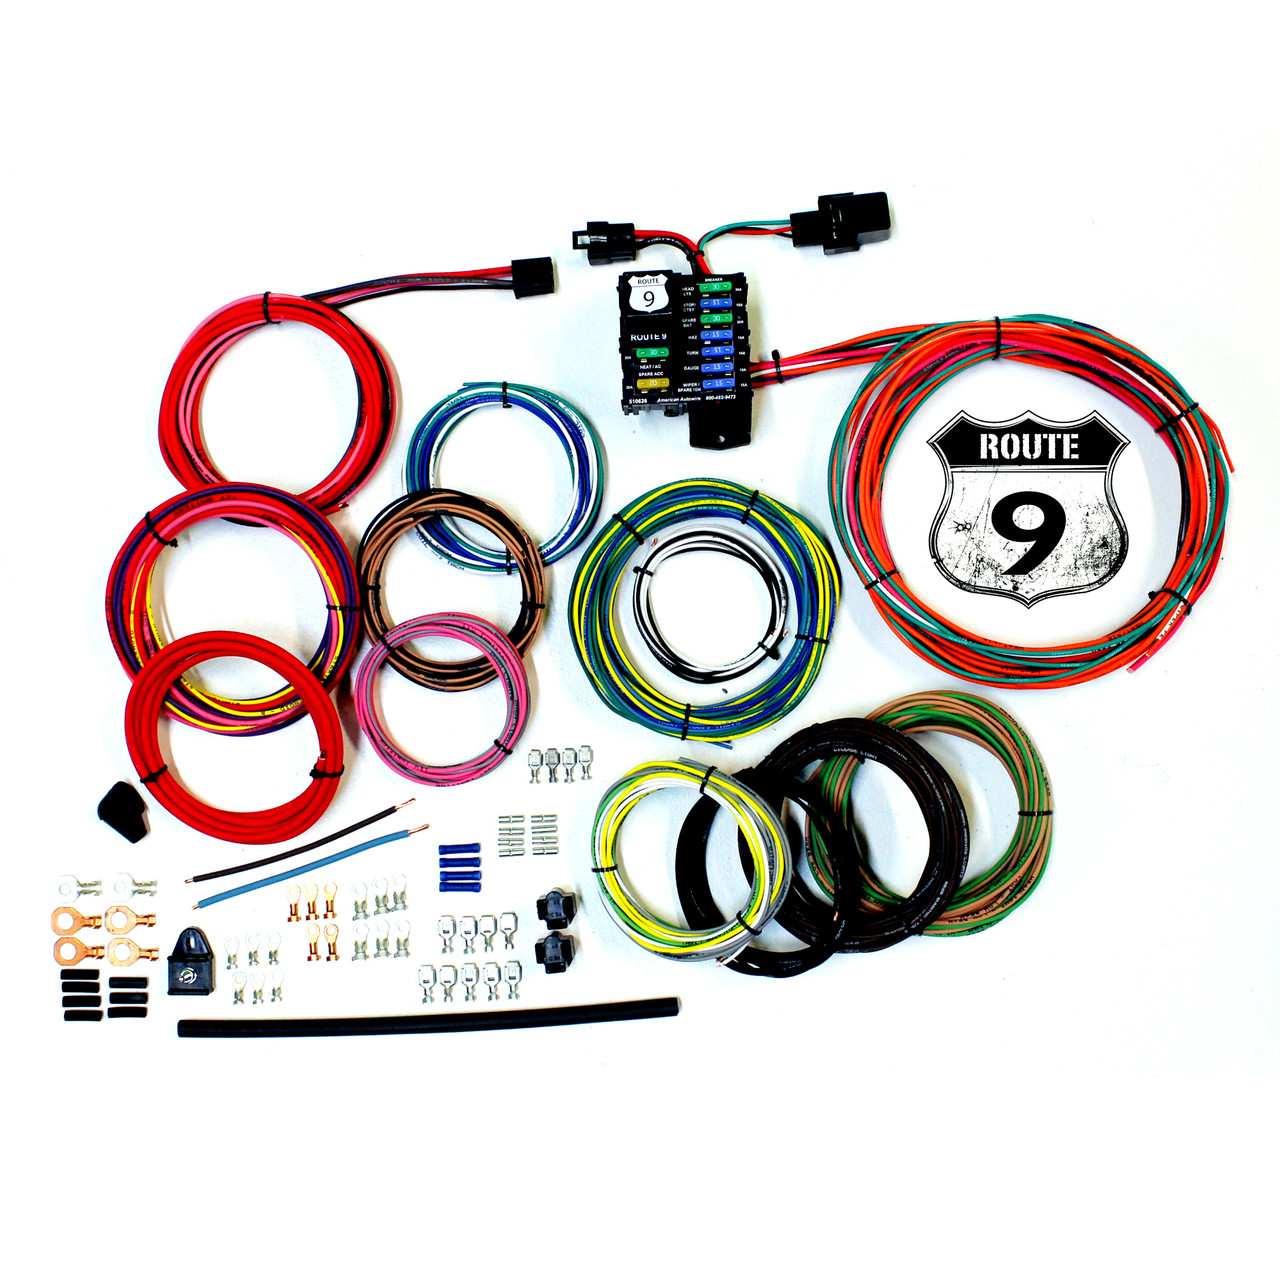 medium resolution of american autowire route 9 universal wiring kit ame 510625